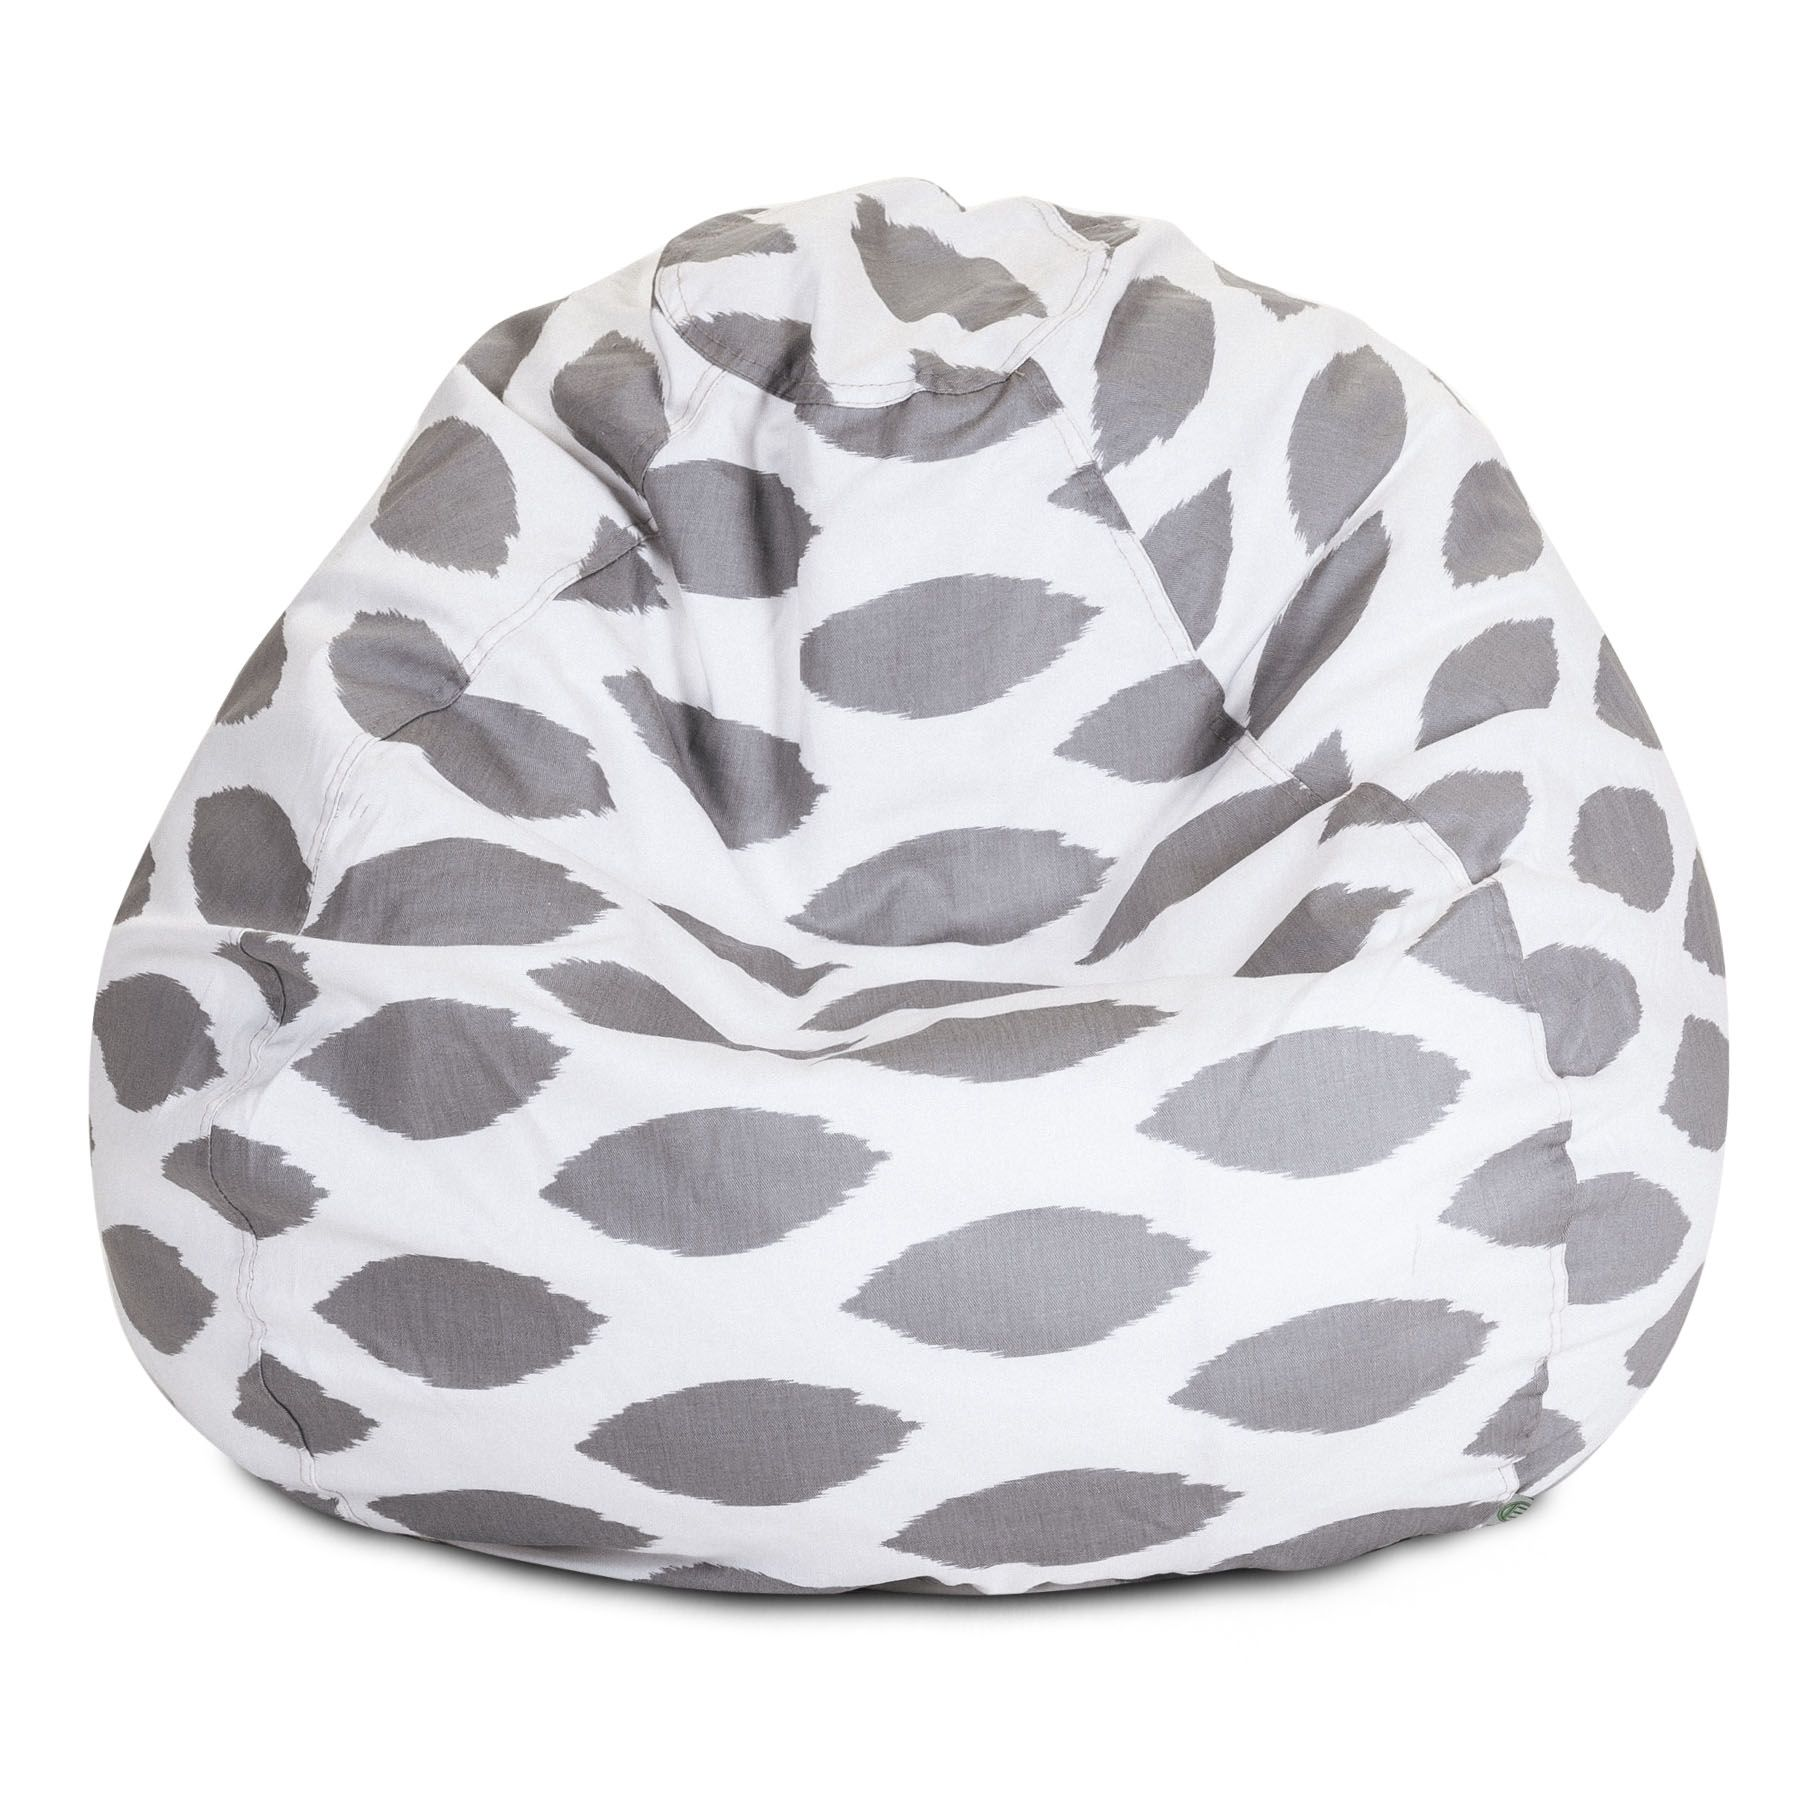 images about bean bag chairs on pinterest -